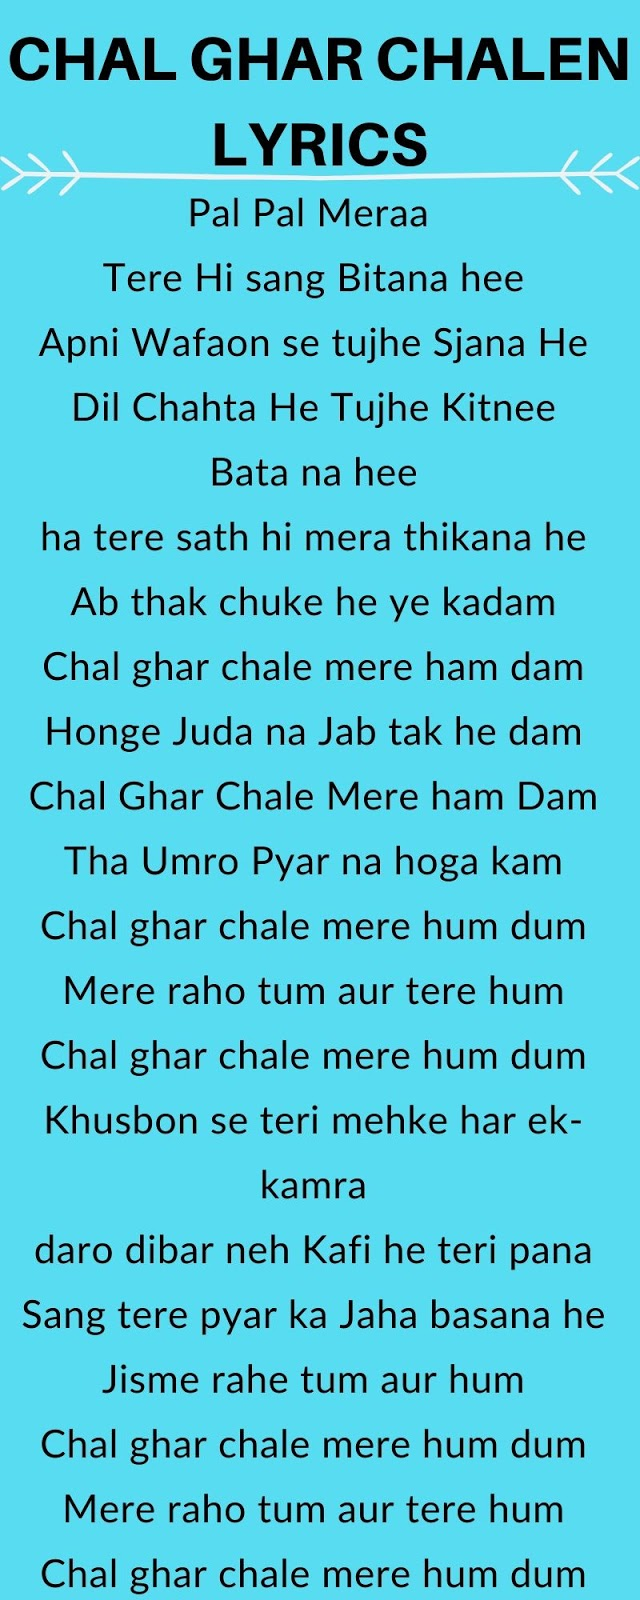 Chal Ghar Chalen Lyrics Malang Arijit Singh Bollywood Lyrics Hub